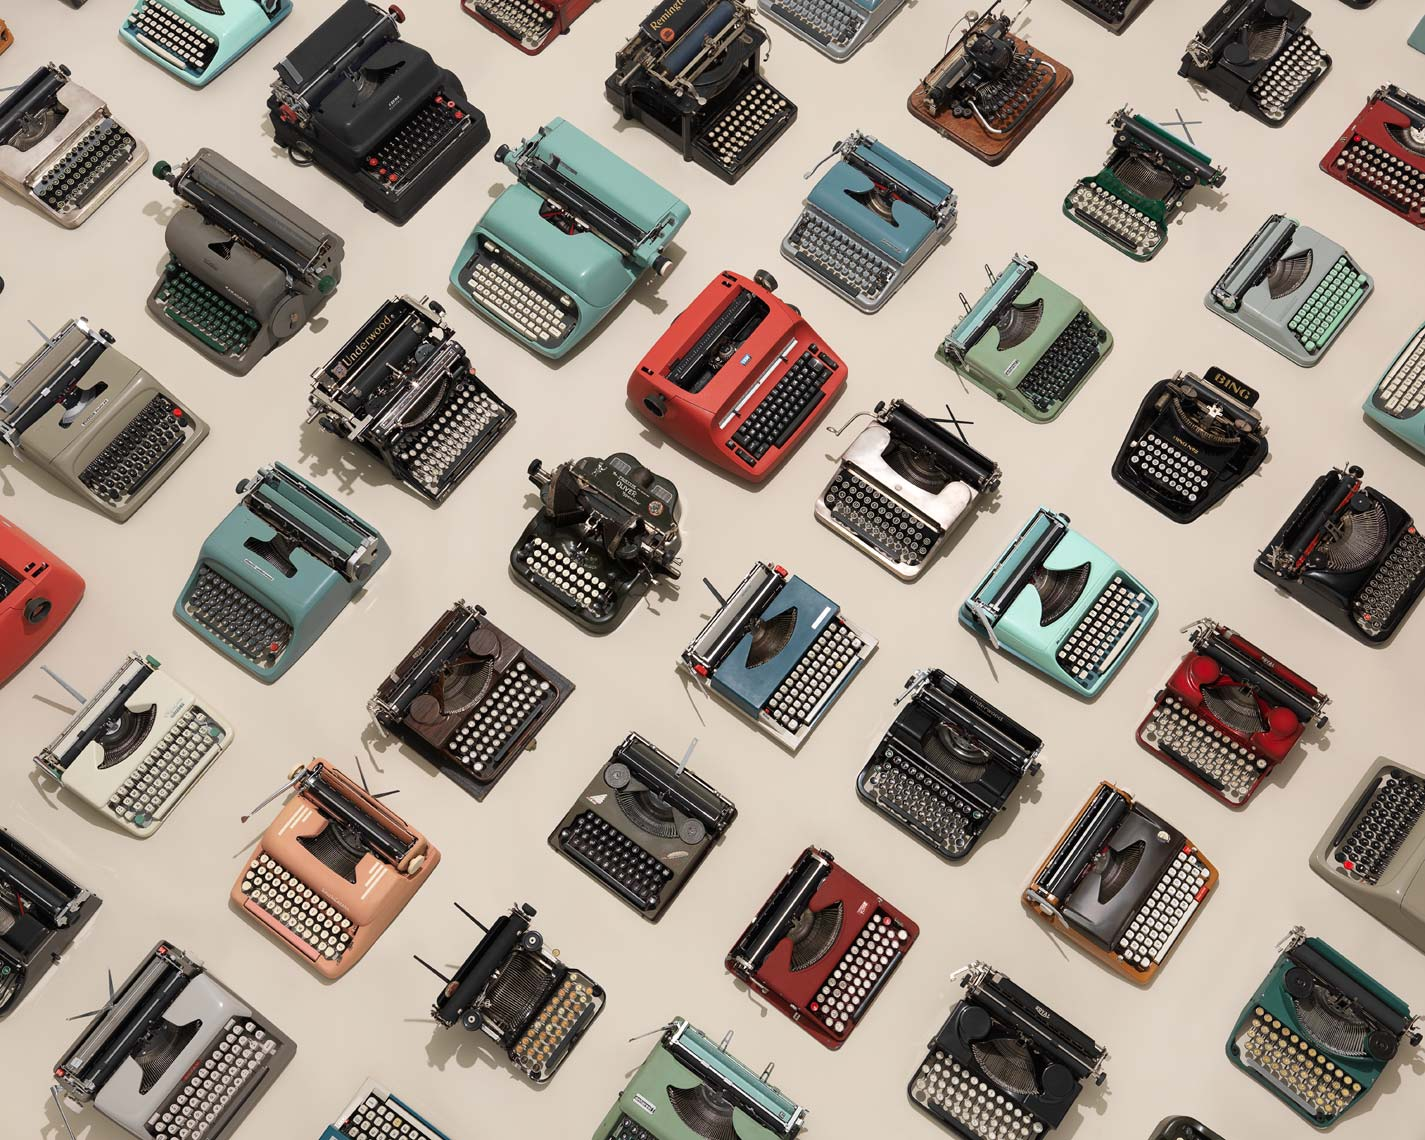 vintage typewriters arranged neatly from overhead